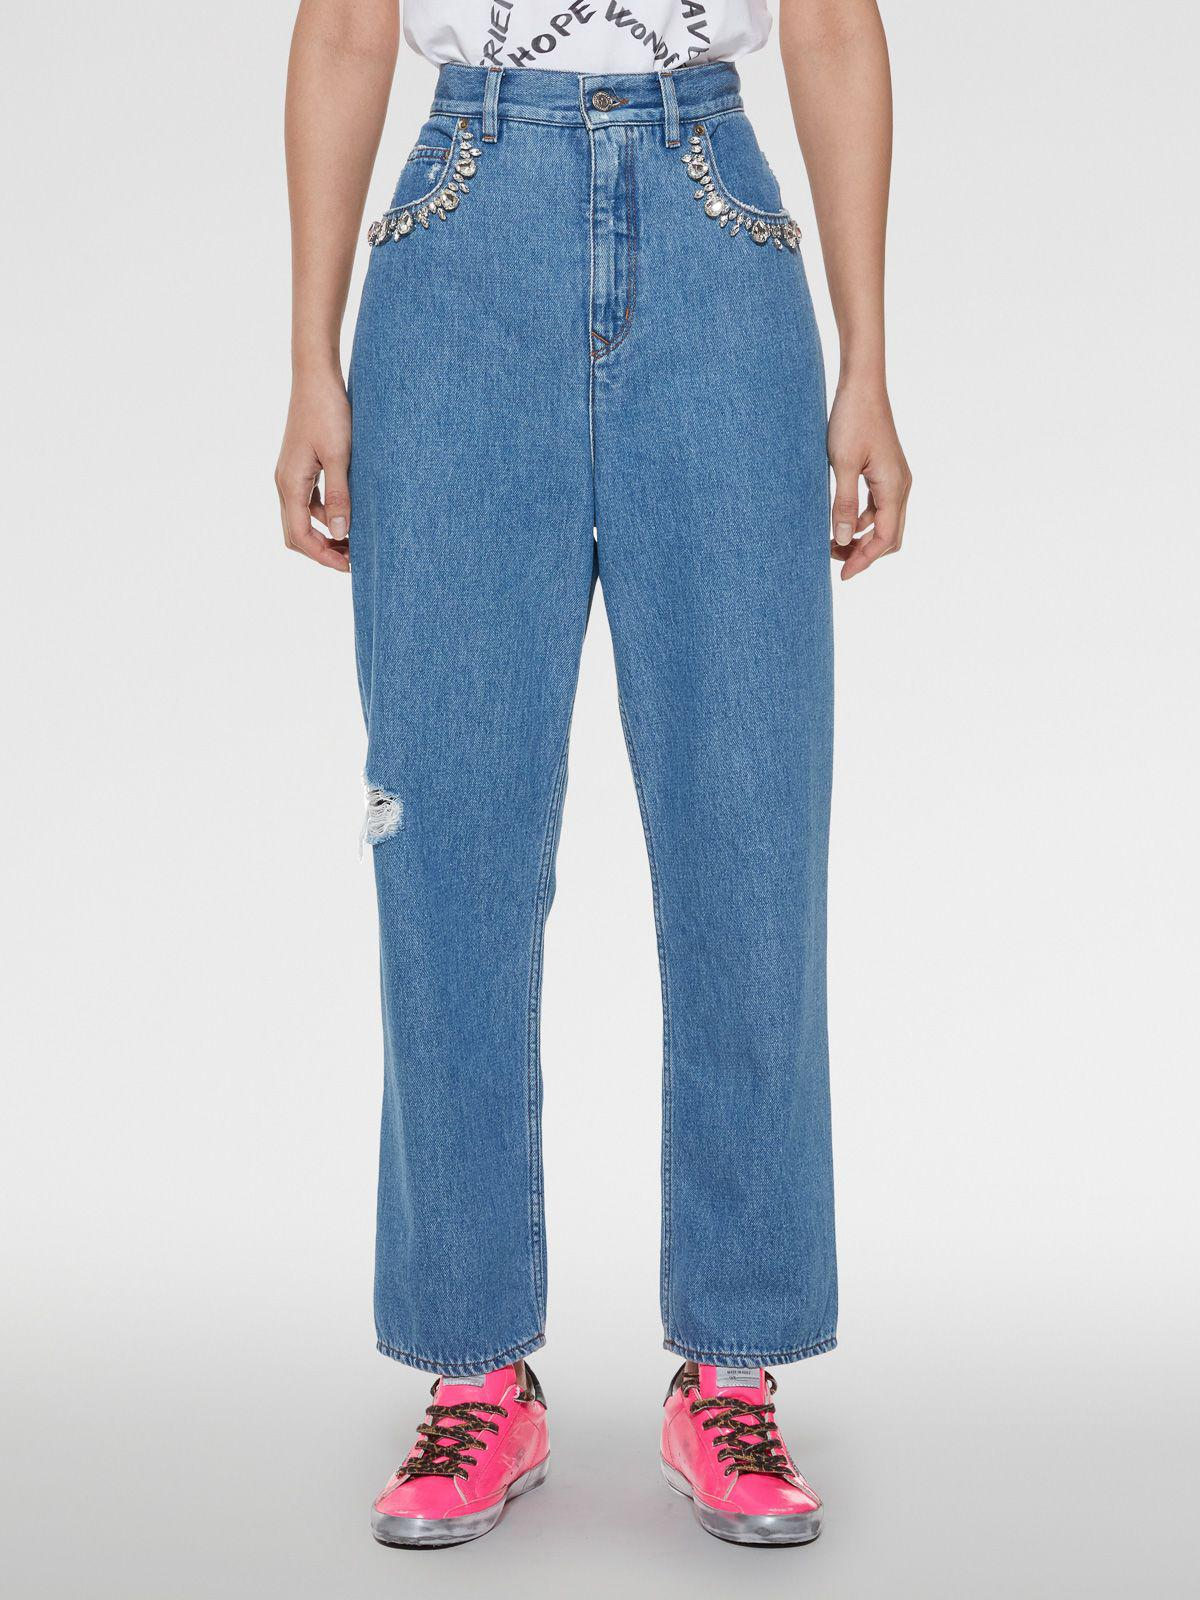 Kim denim jeans with crystals applications